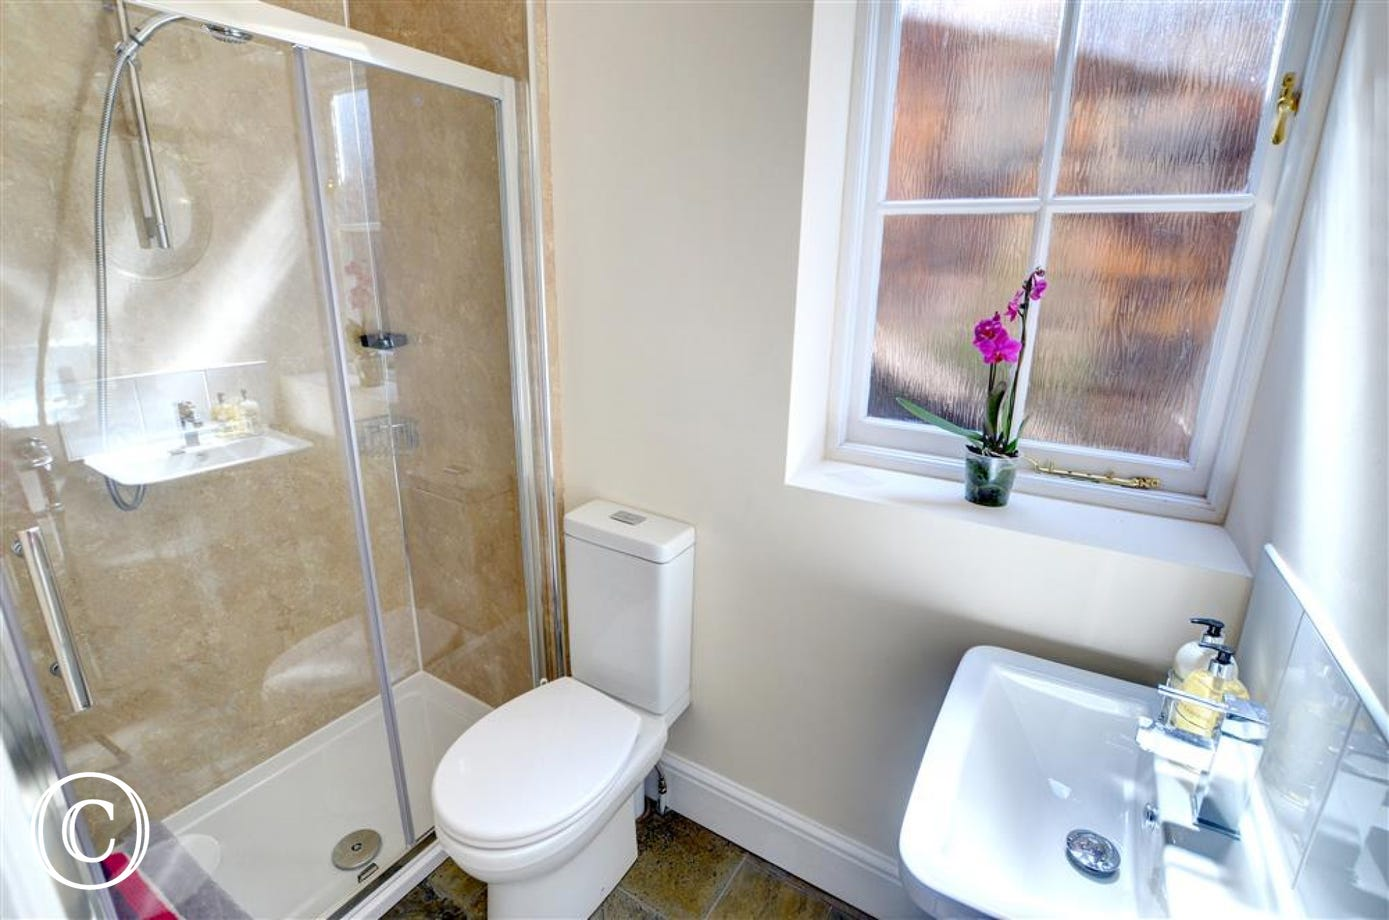 Modern bathroom with large shower cubicle.